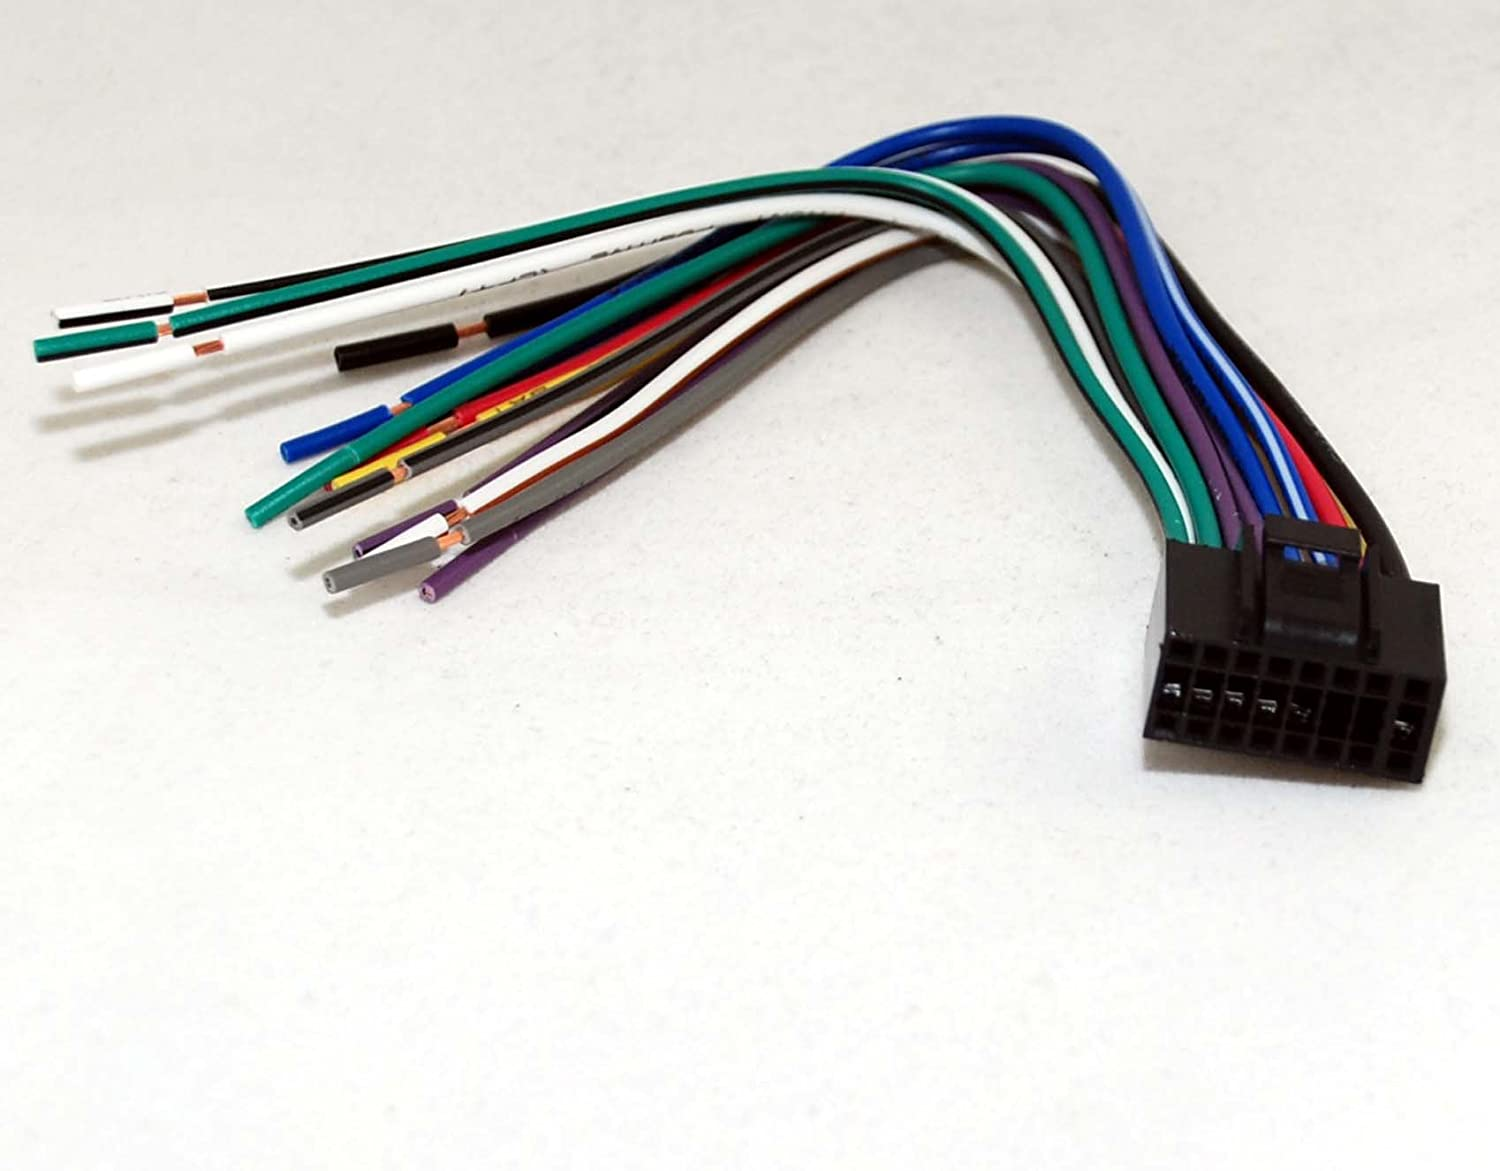 61Rzeblbo0L._SL1500_ amazon com xtenzi harness for dual 16 pin wire harness xdvd8181  at edmiracle.co